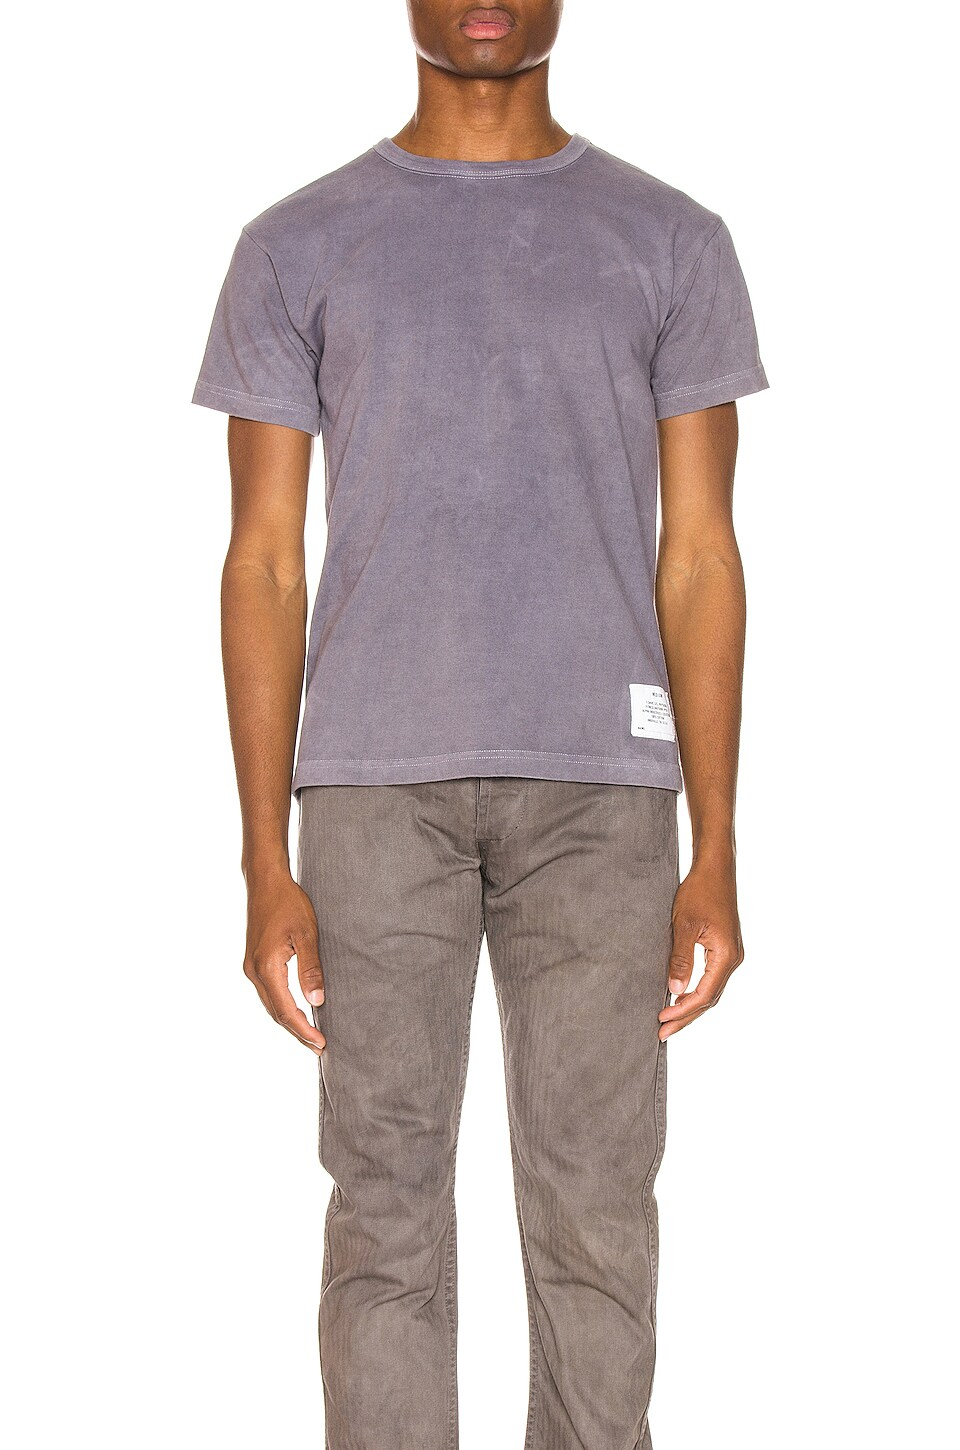 ALPHA INDUSTRIES x 3Sixteen Natural Dye Tee